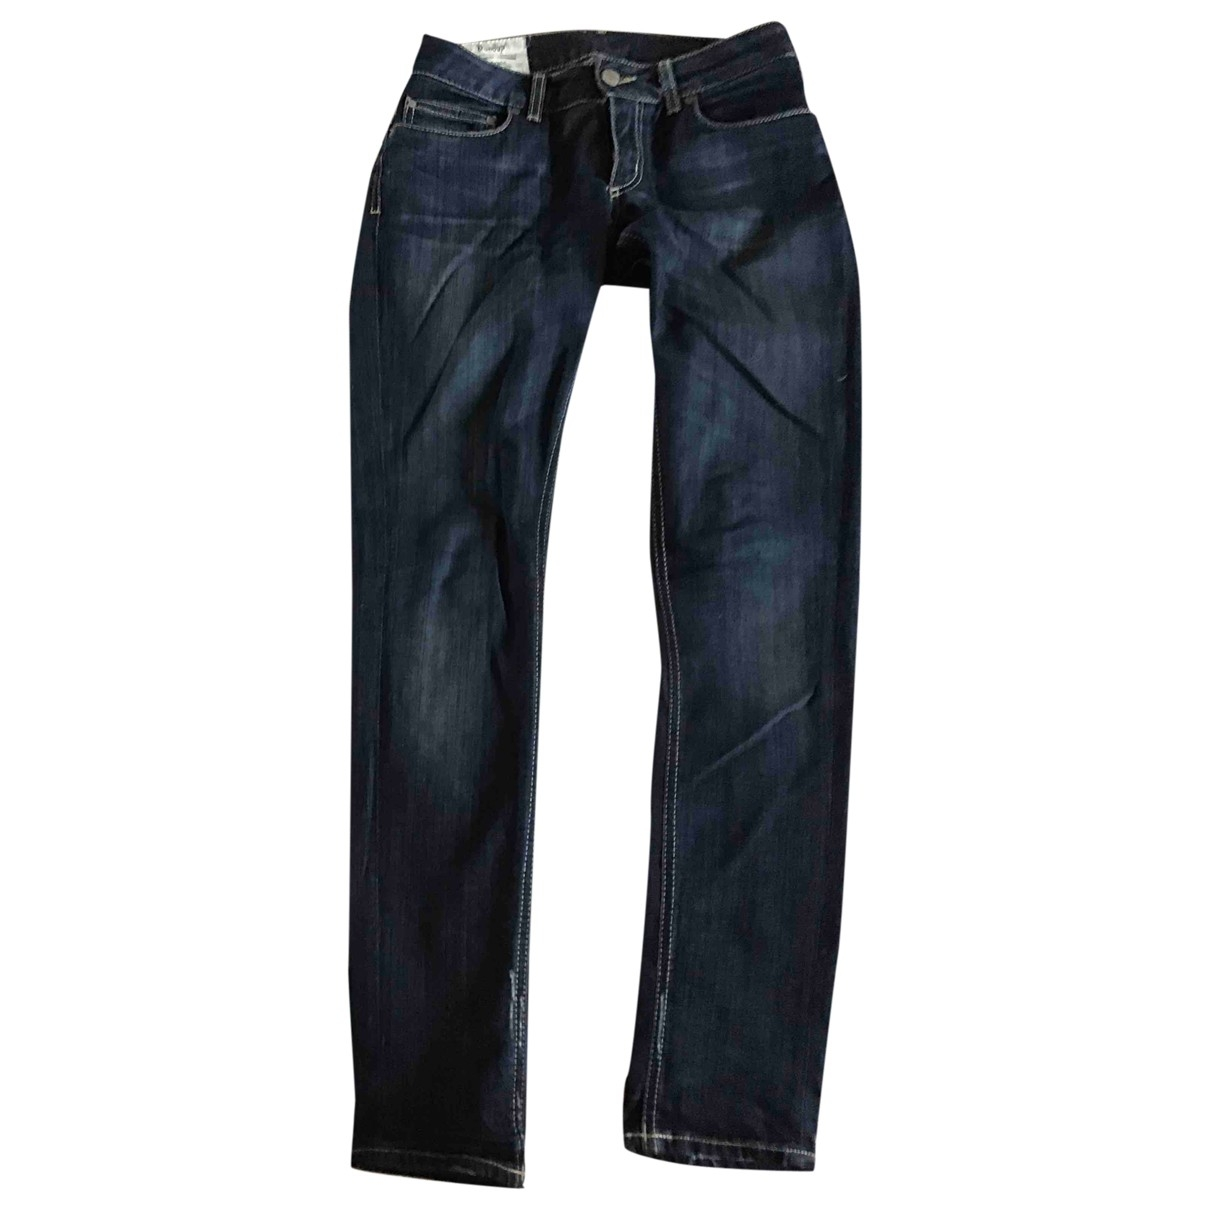 Dondup \N Blue Denim - Jeans Jeans for Women 26 US